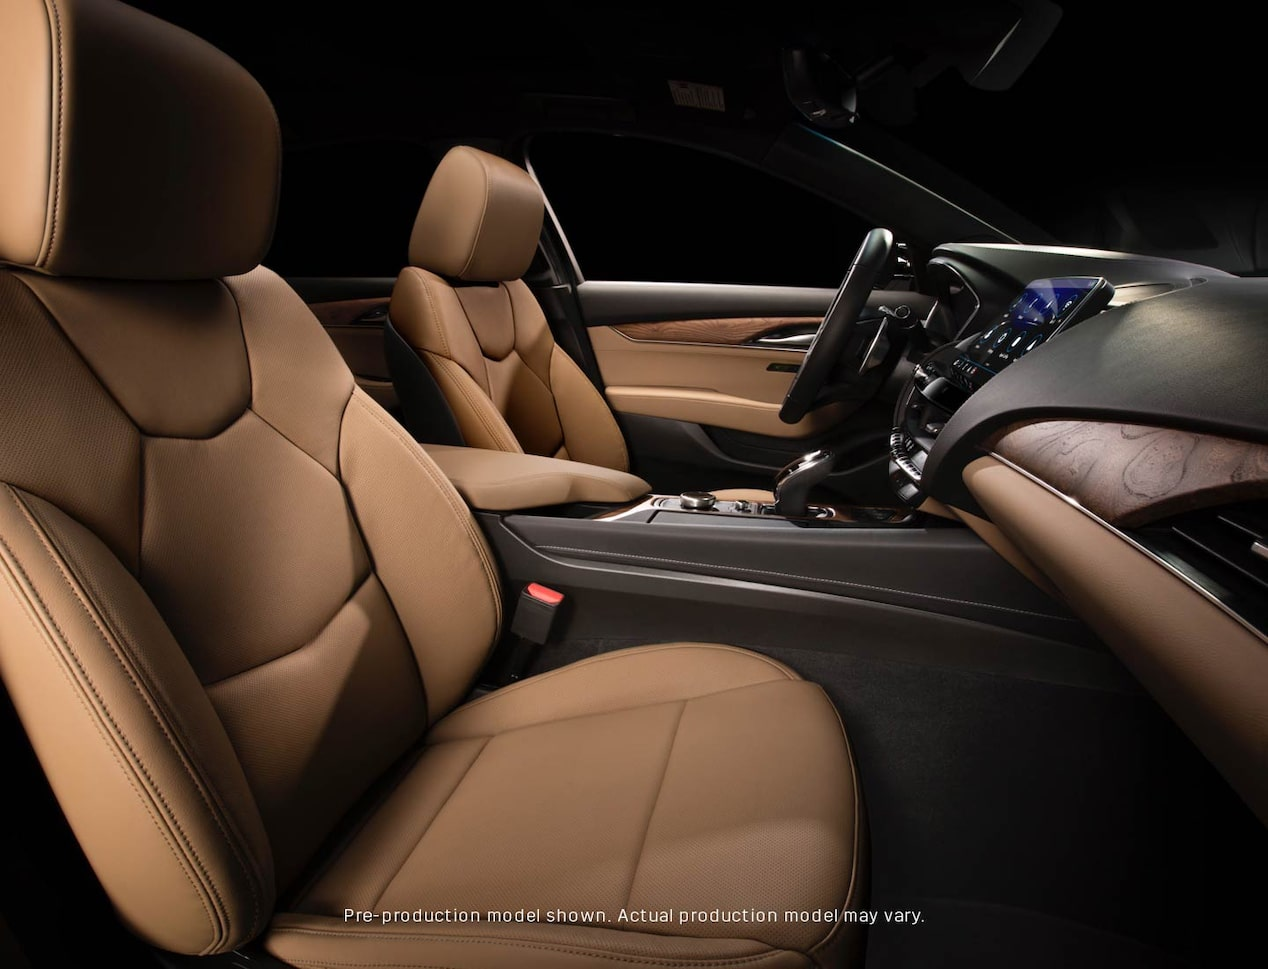 2020 Cadillac CT5 Interior with light brown leather seats and dark brown and black dashboard.